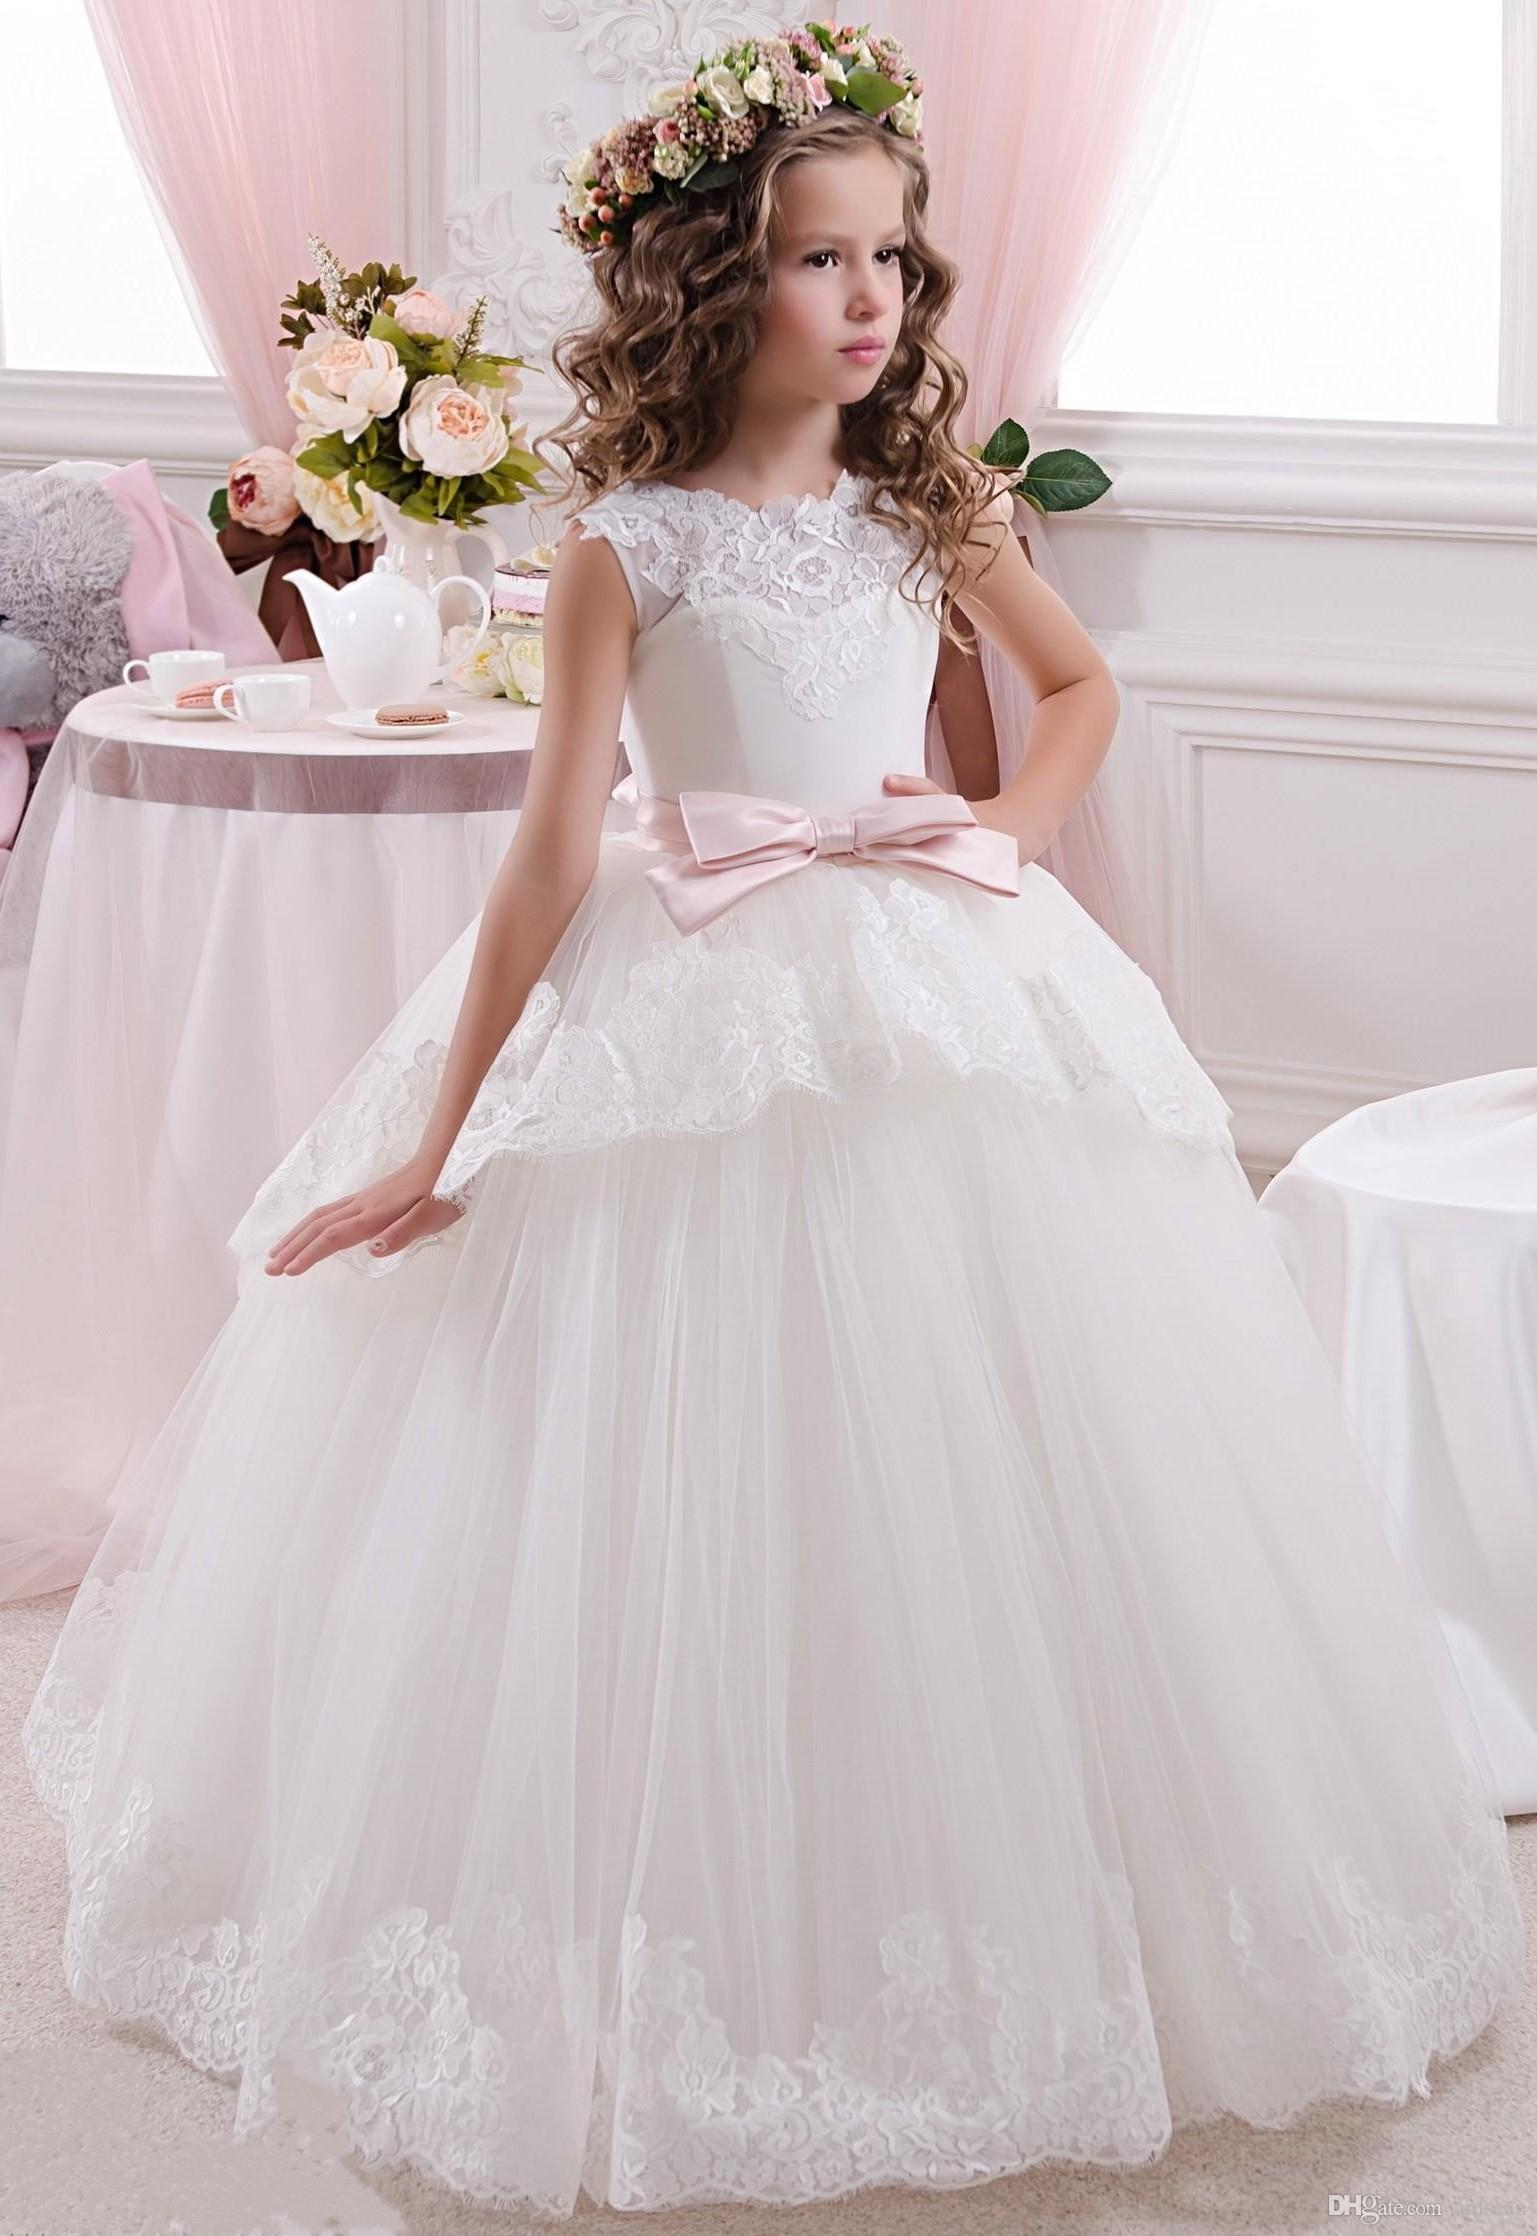 2018 New Cheap Flower Girls Dresses For Wedding Ivory White Lace Bow